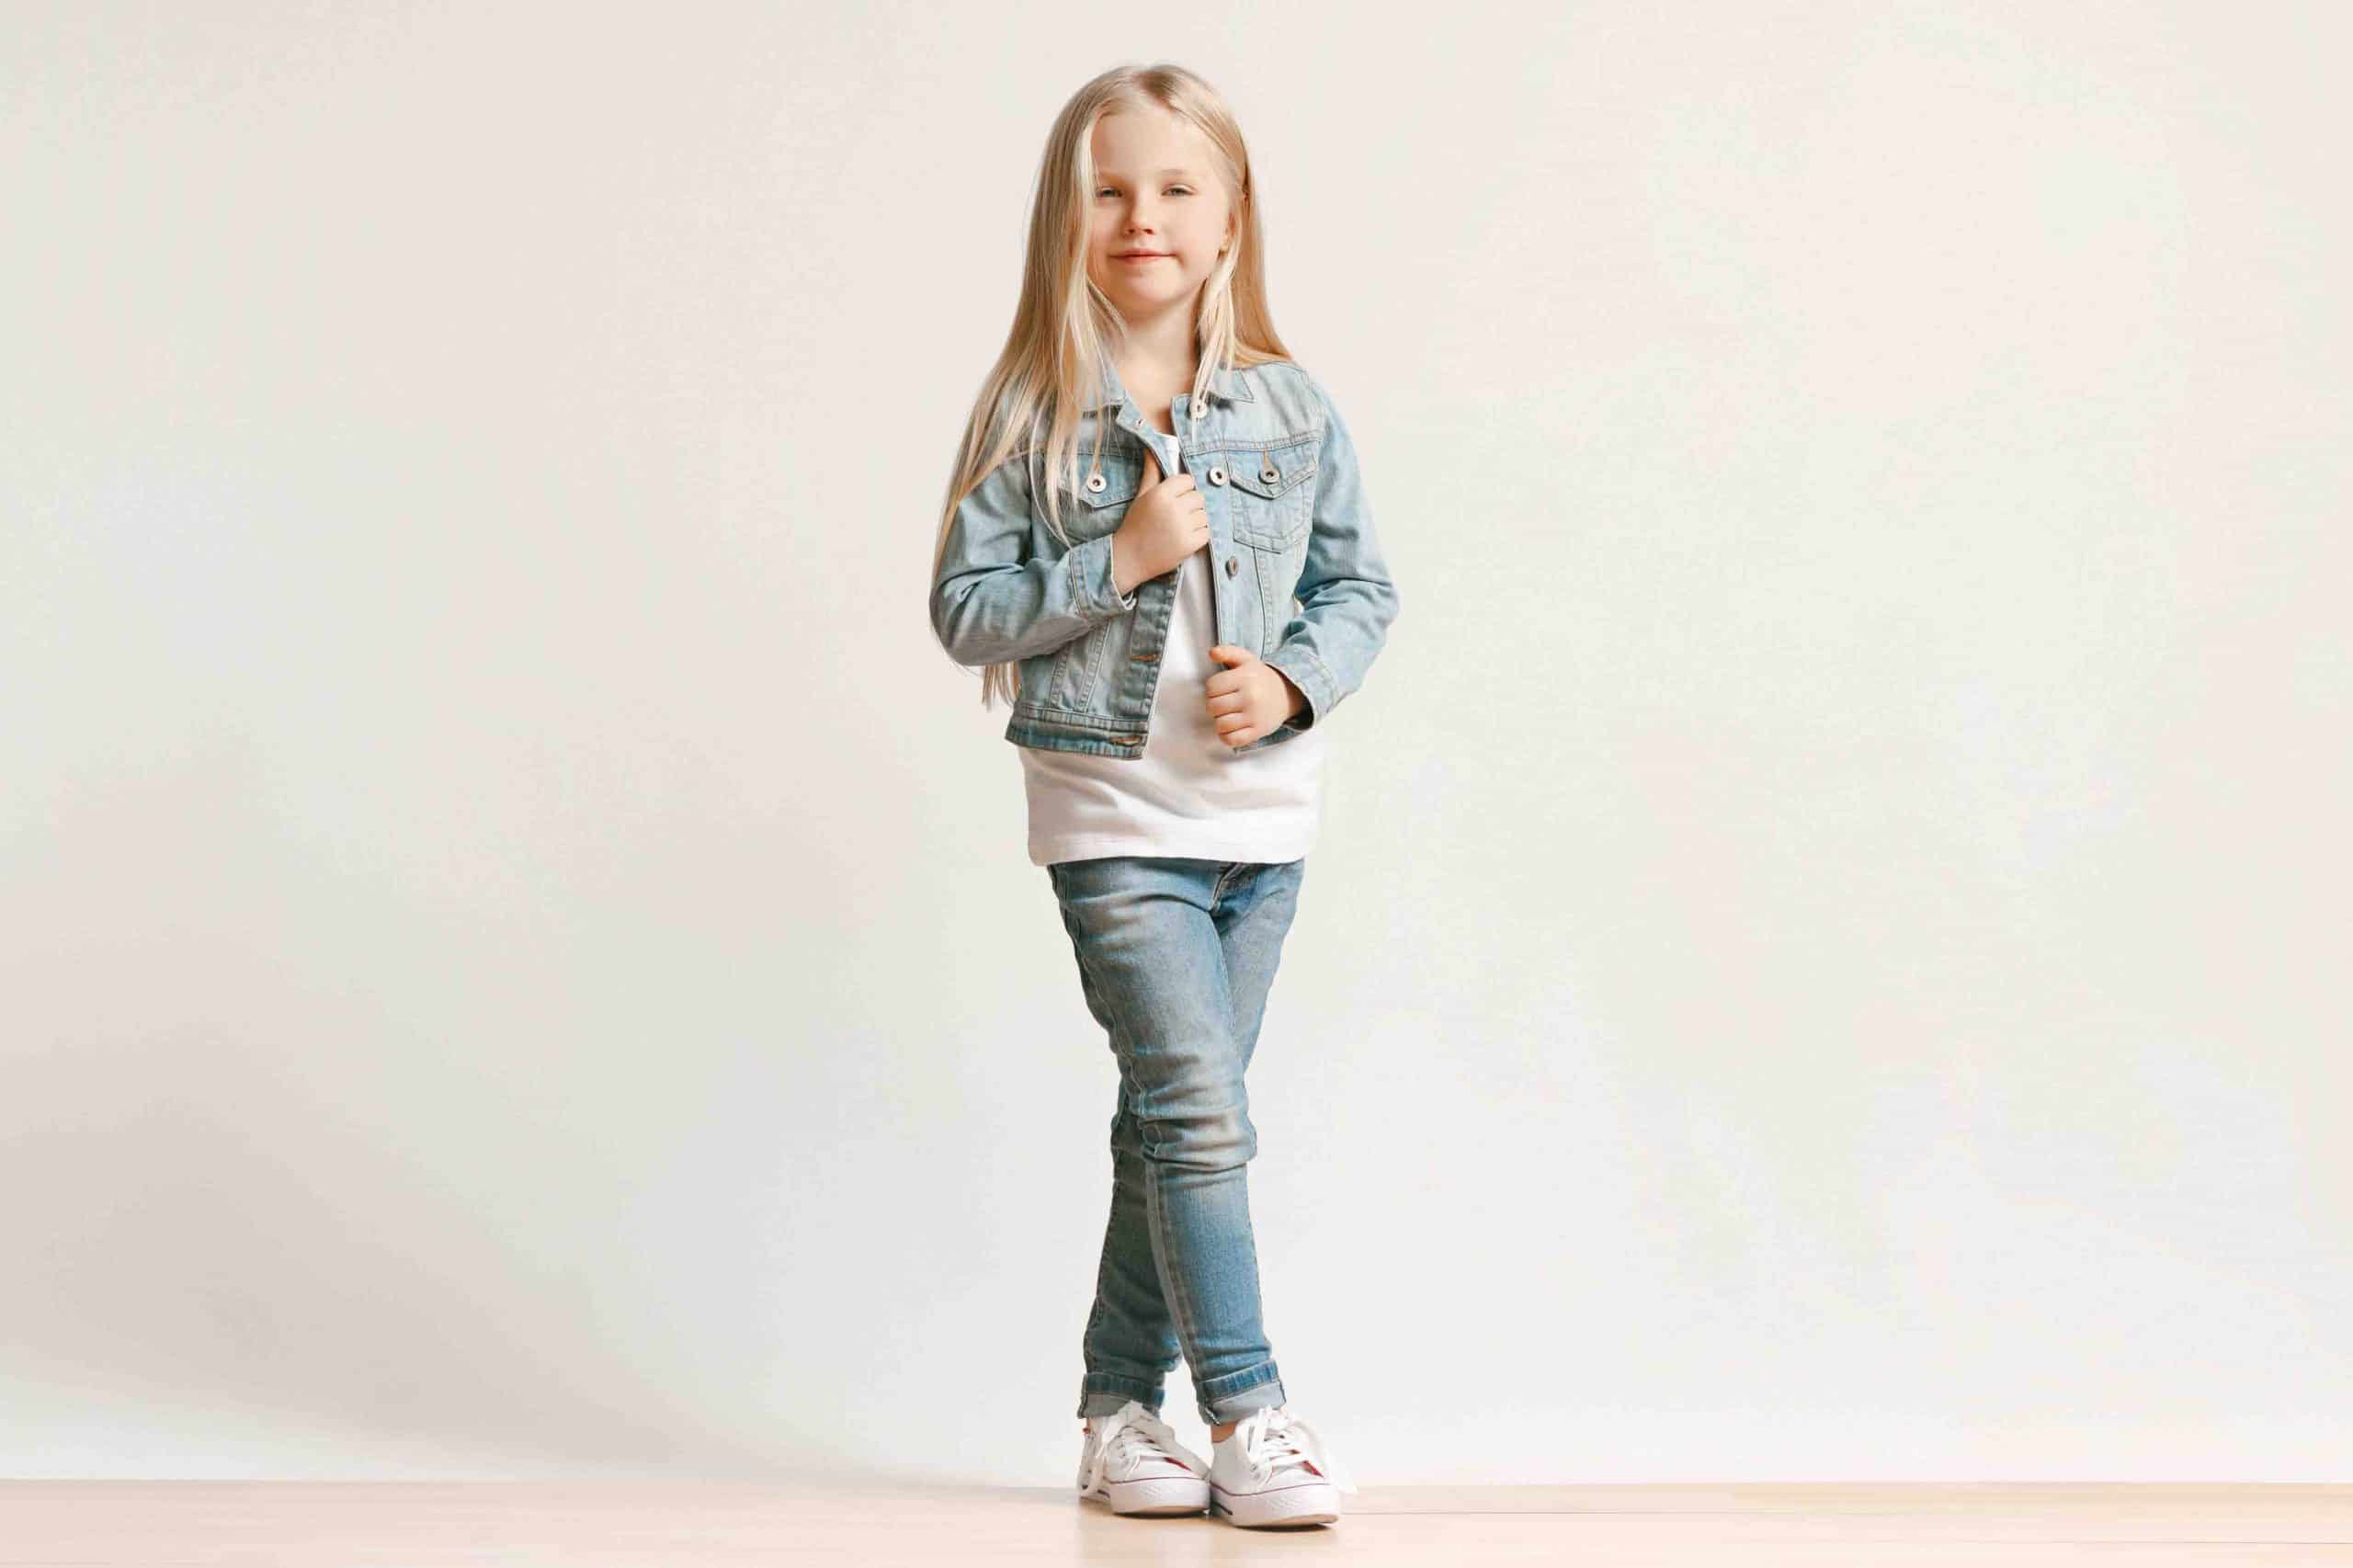 Understanding The Psychology Of Clothing In Children - A Guide For Parents